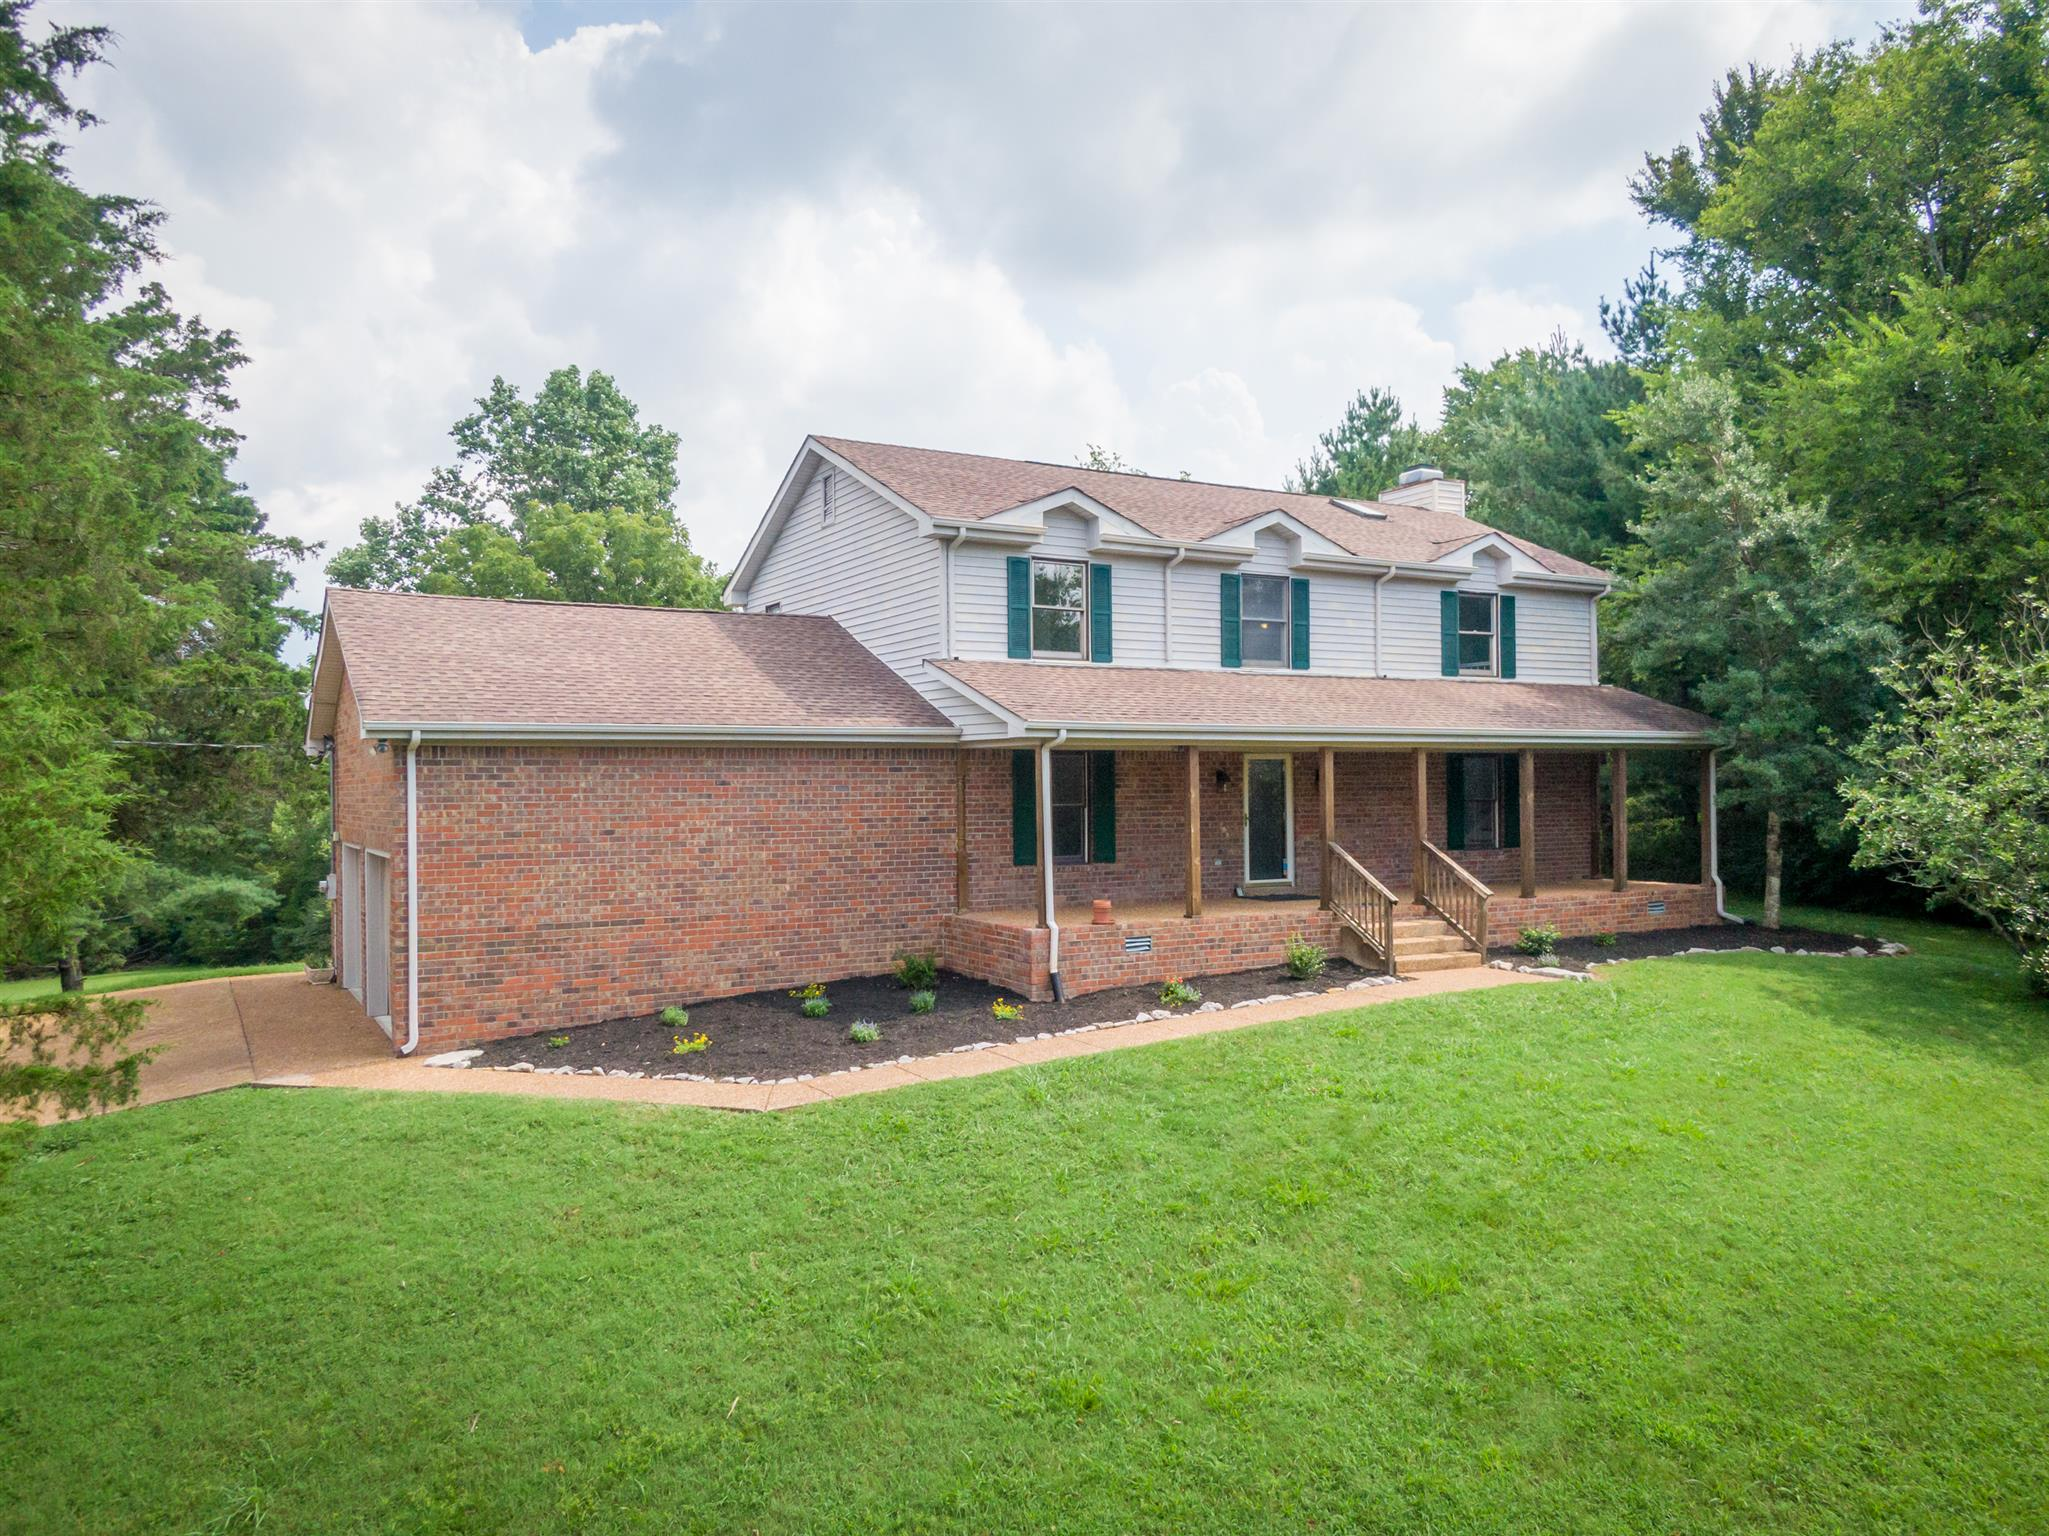 14144 Old Hickory Blvd, Antioch, TN 37013 - Antioch, TN real estate listing